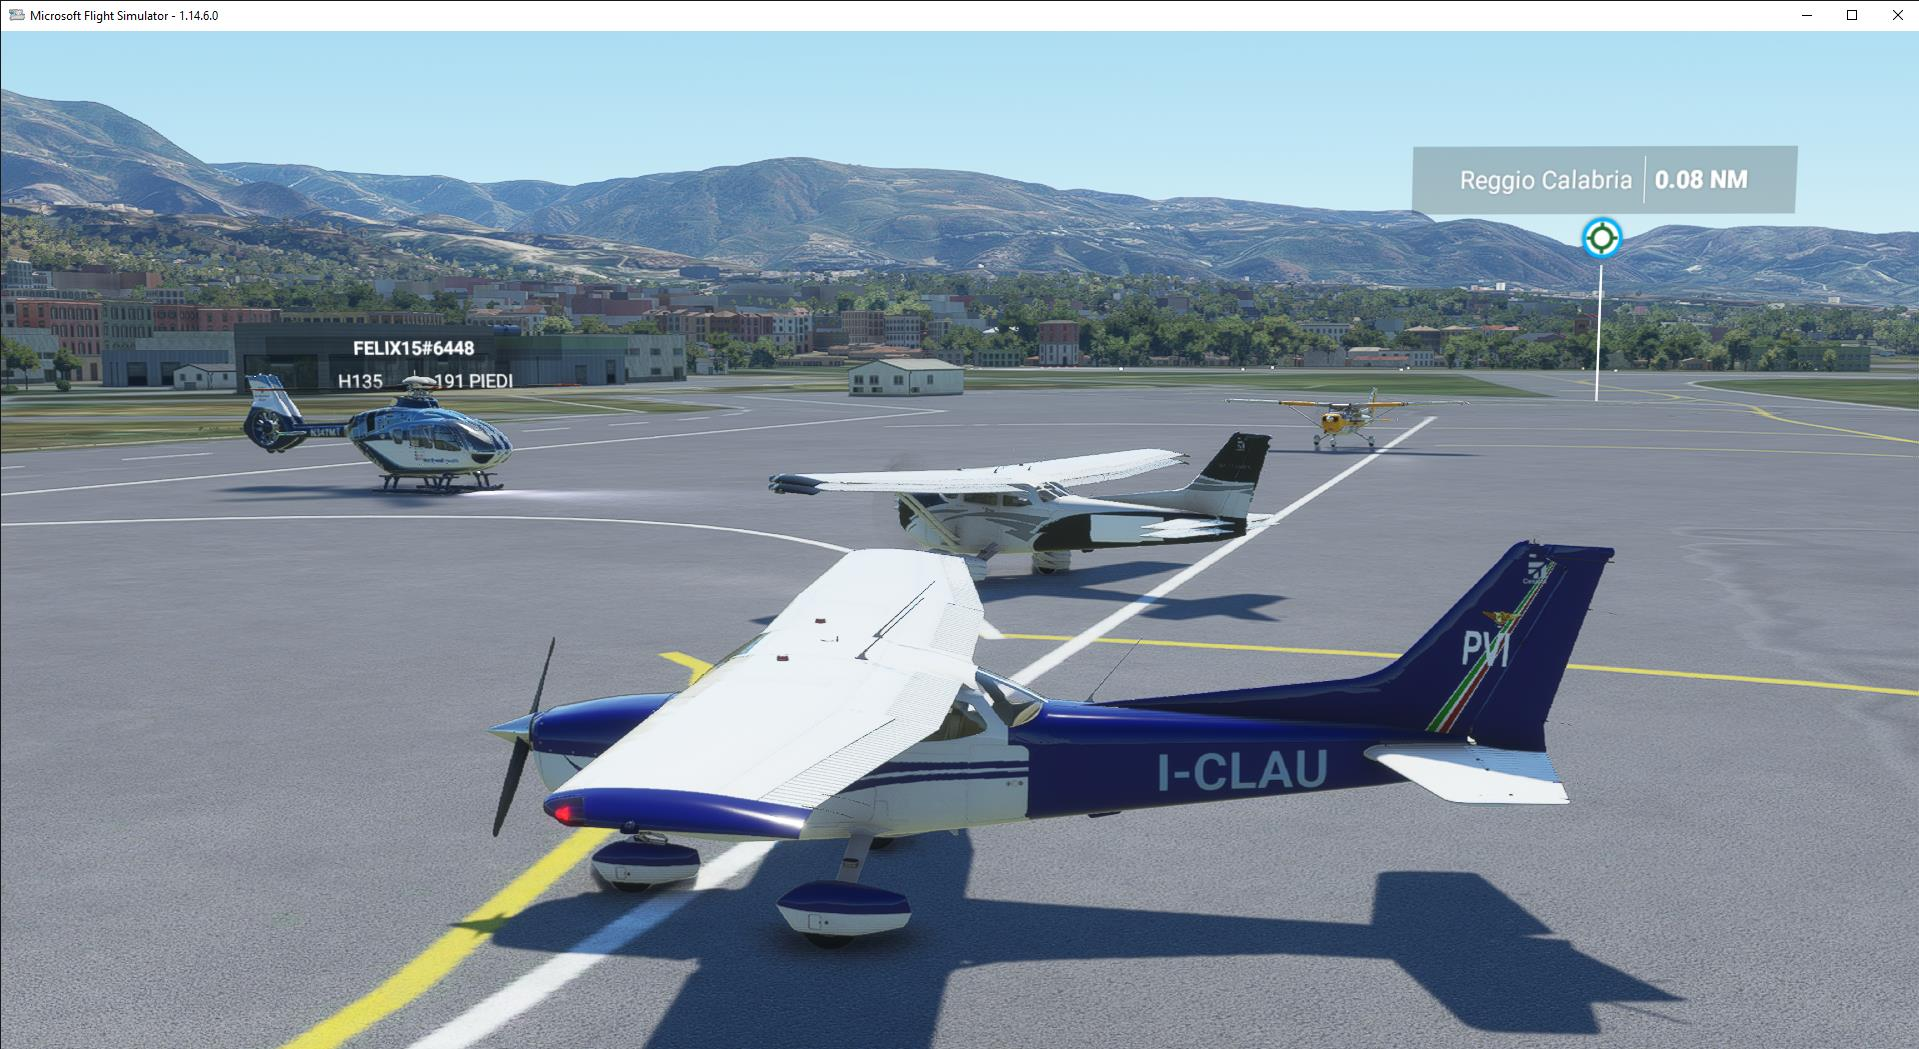 https://vivendobyte.blob.core.windows.net/59034/Microsoft Flight Simulator - 1.14.6.0 05_04_2021 22_46_51.jpg